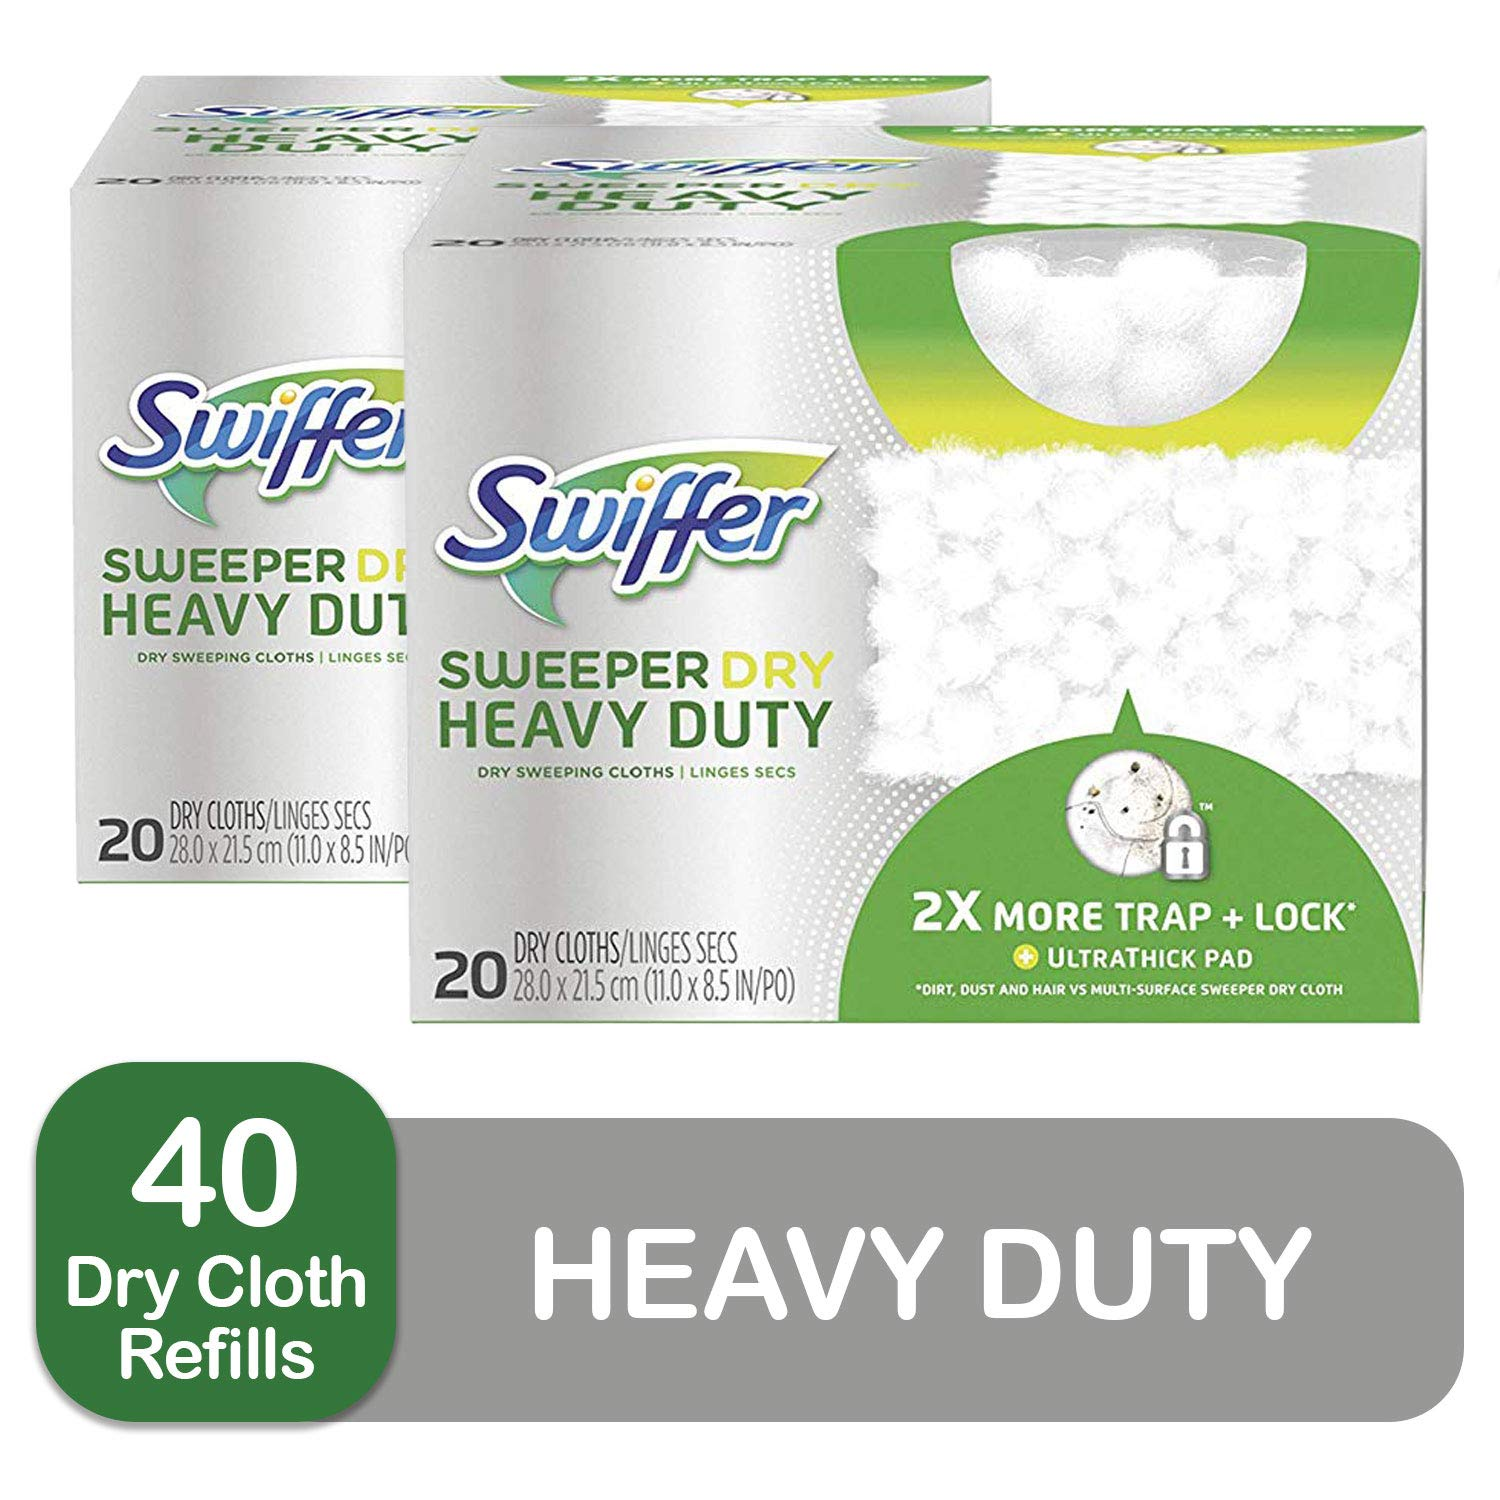 Swiffer Sweeper Heavy Duty Dry Sweeping Cloths, 40 Count